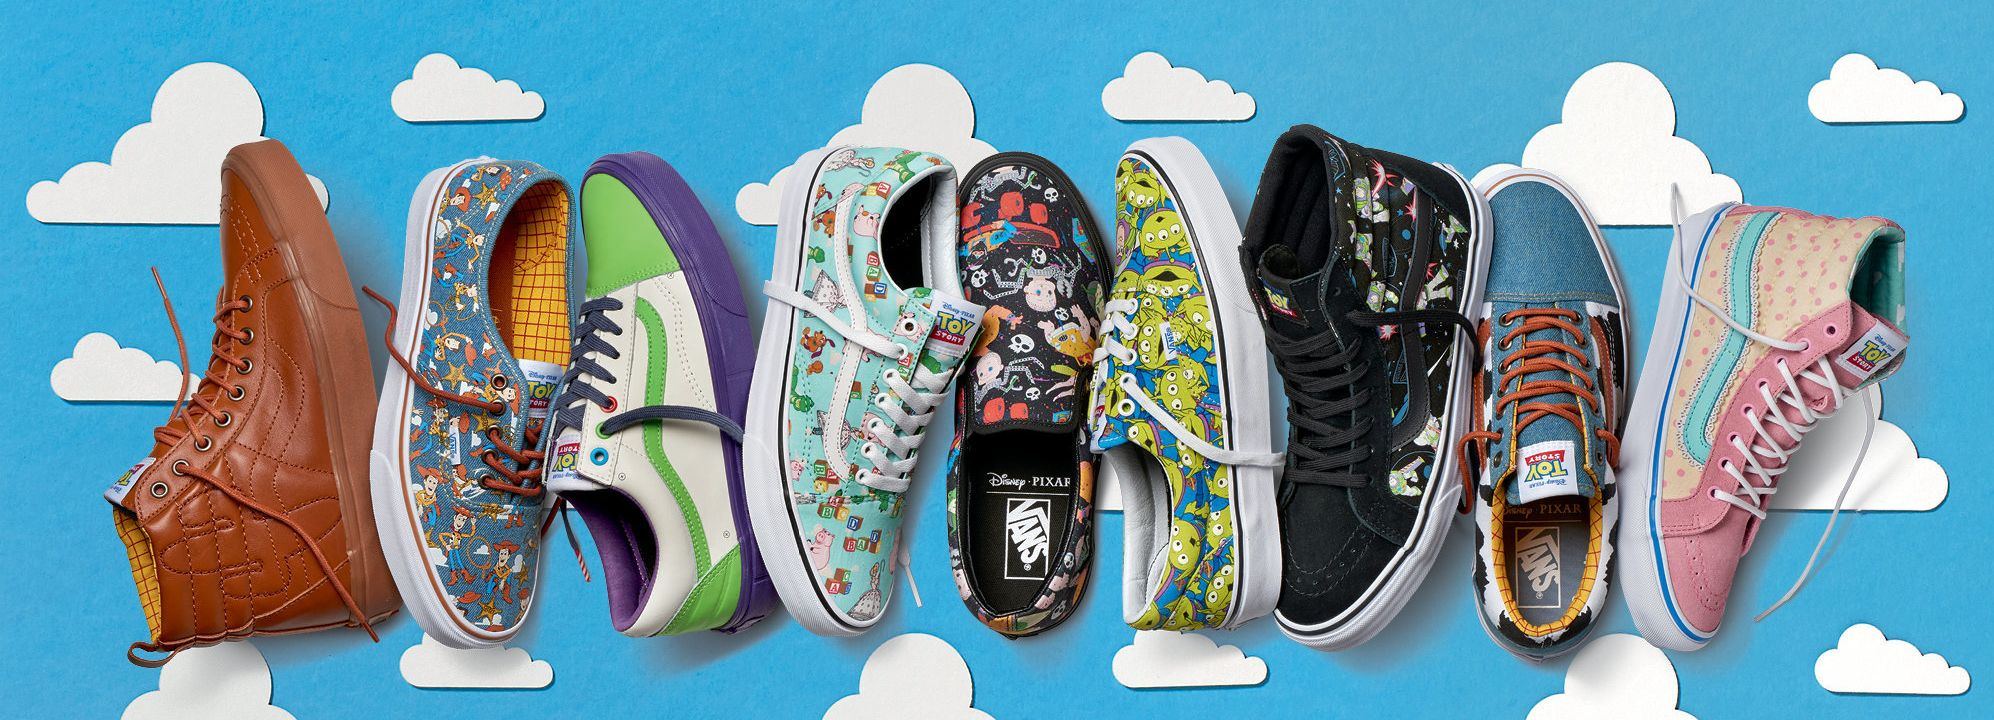 vans shoes toy story